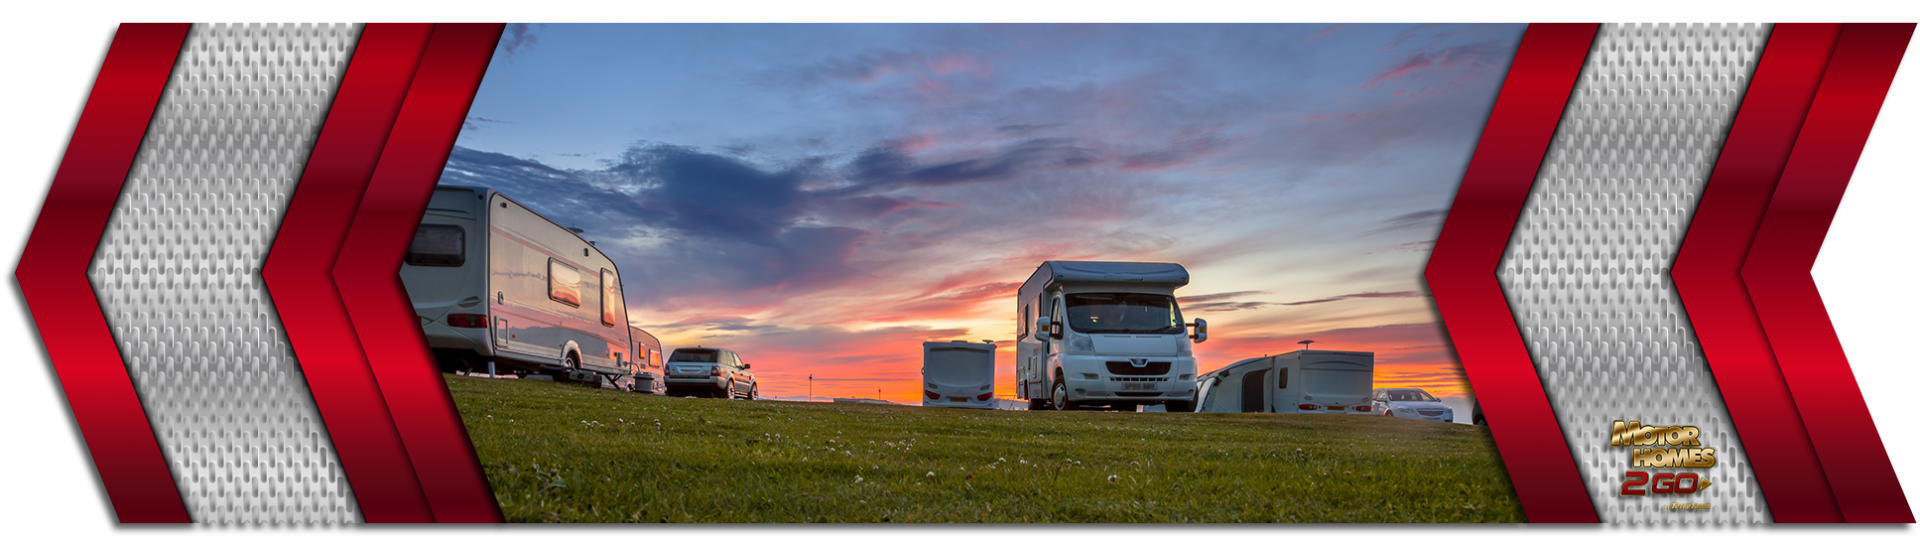 Experience the Beauty of America with the RV Lifestyle